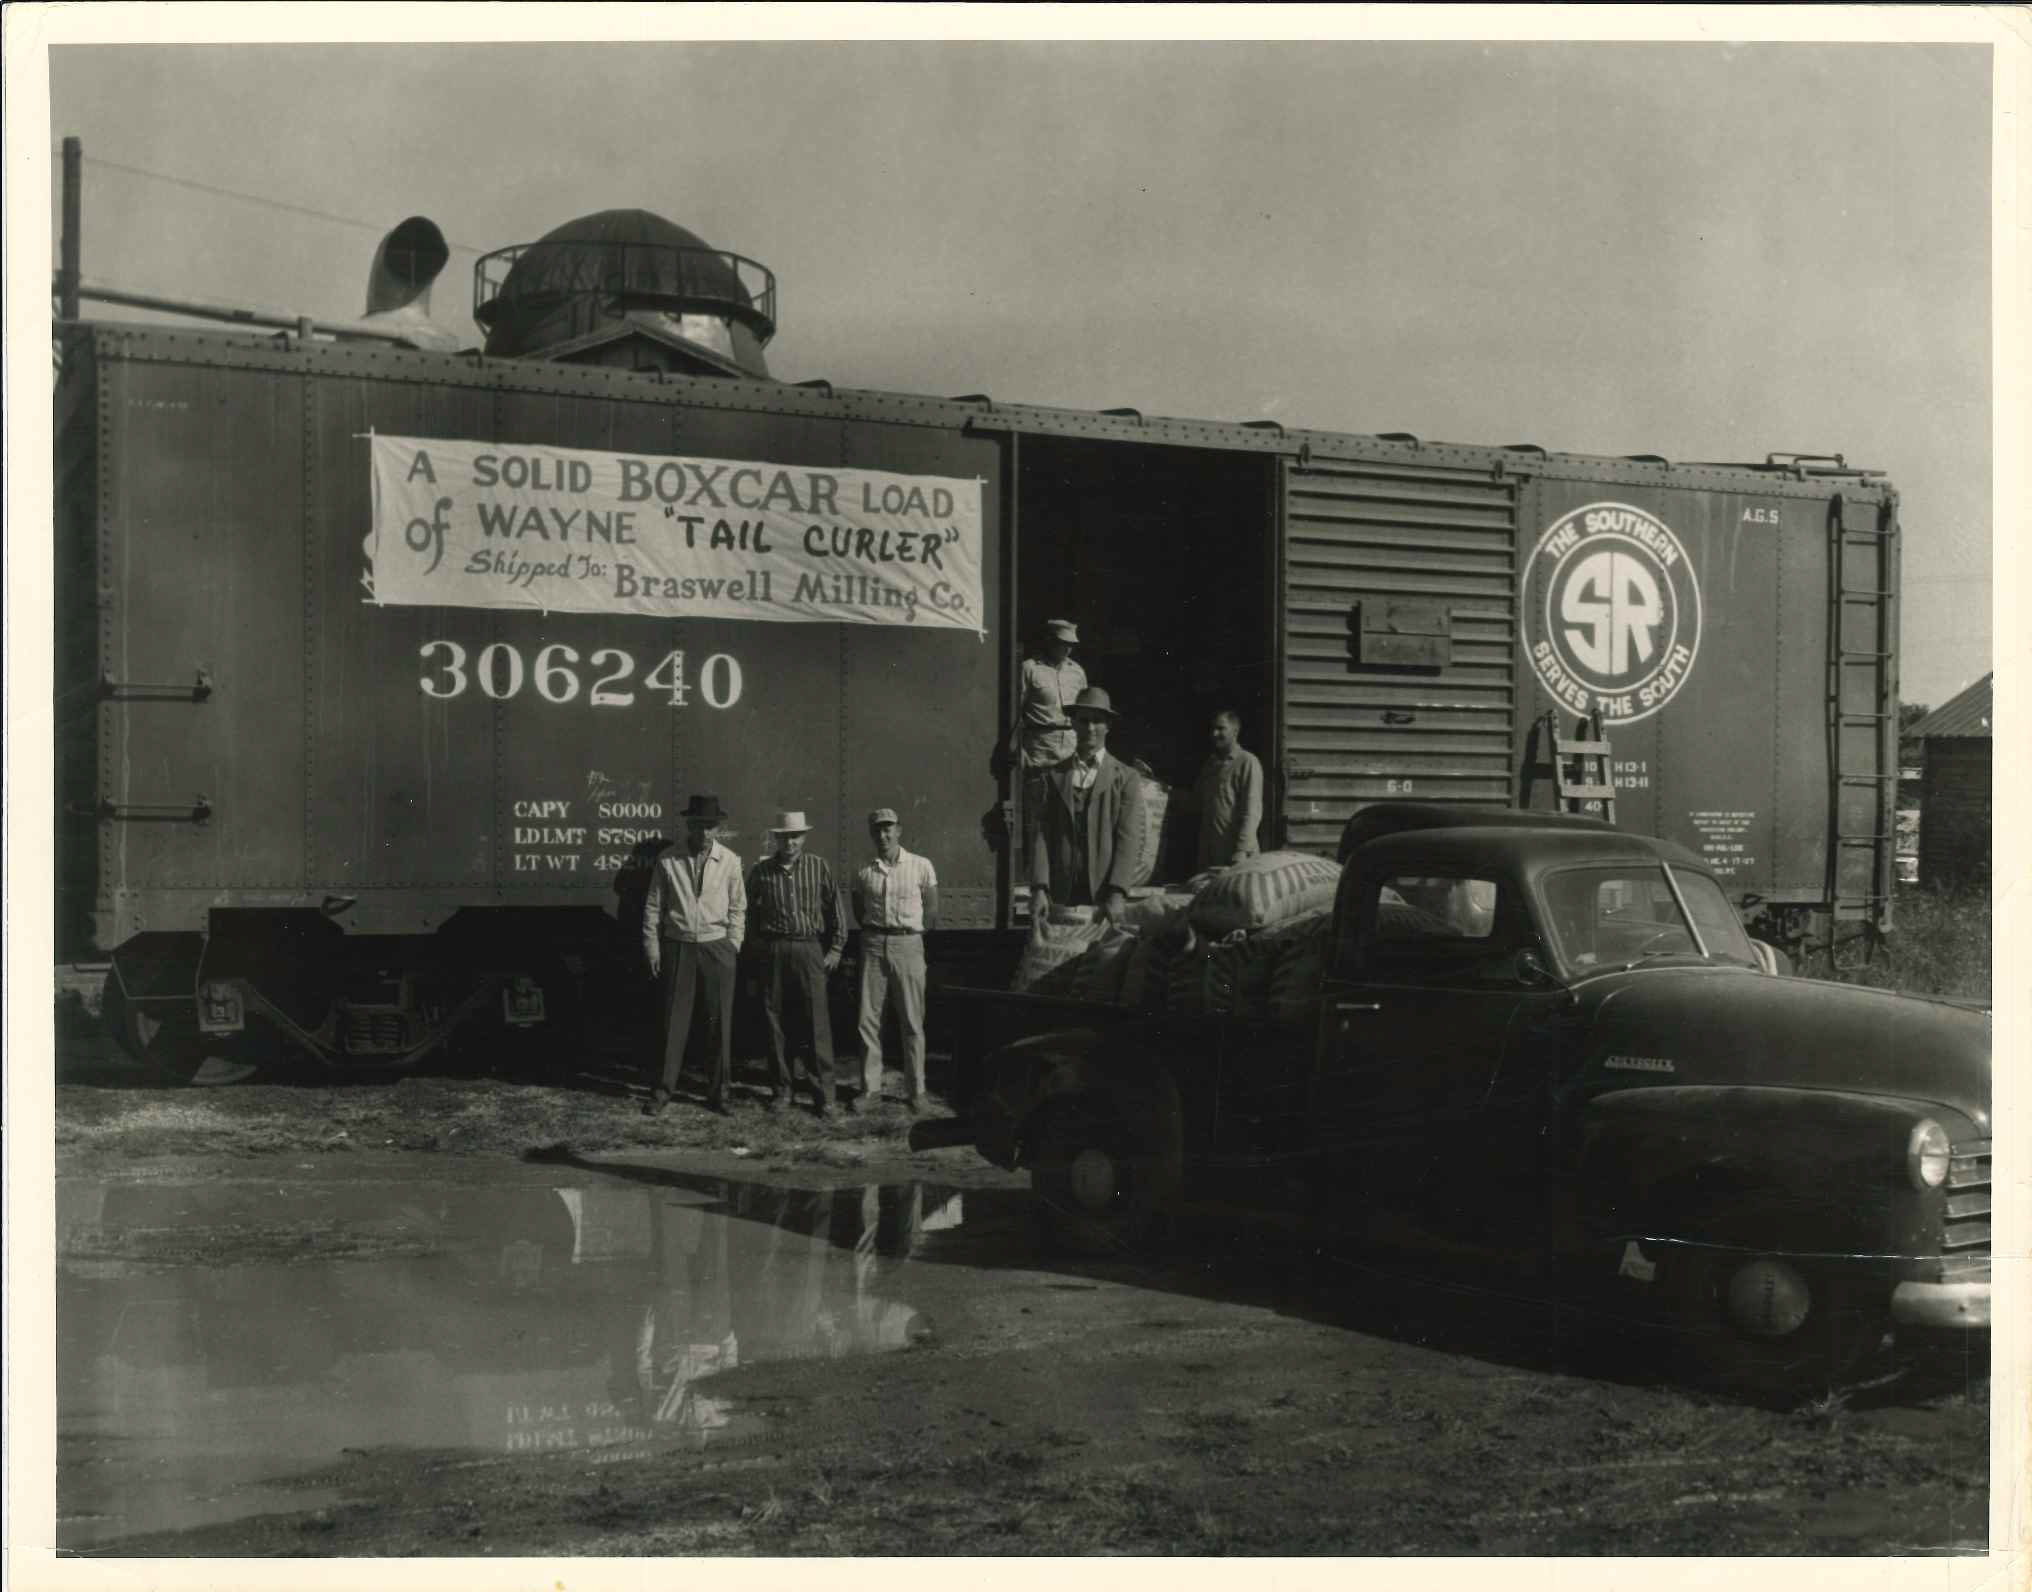 Ronald and Gene stand with a representative of Wayne Feed as they fill an entire boxcar with Wayne Tail Curler specialty swine feed from Braswell Milling.